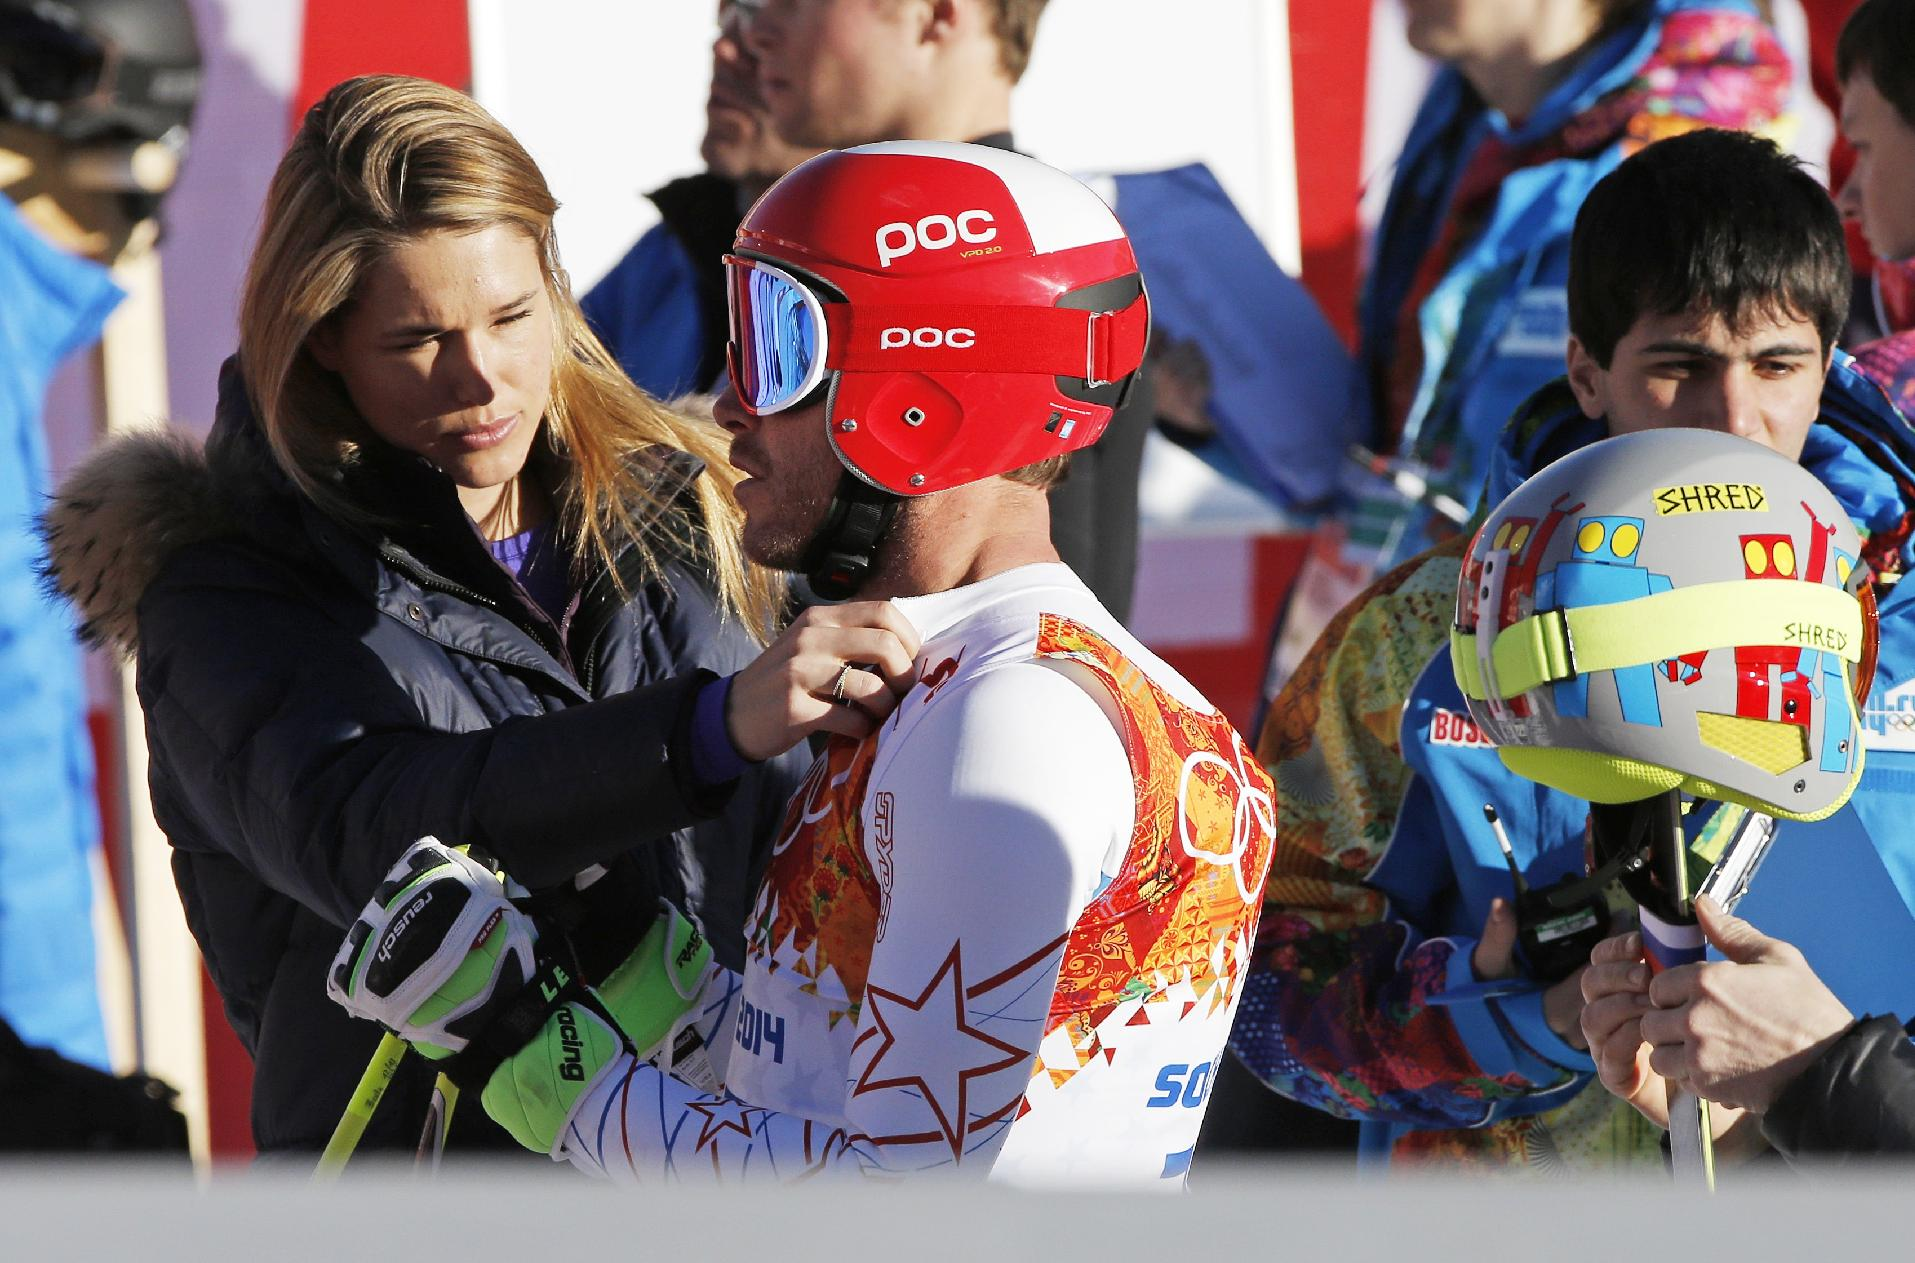 United States' Bode Miller has his ski bib adjusted by his wife Morgan Miller after completing men's downhill combined training at the Sochi 2014 Winter Olympics, Thursday, Feb. 13, 2014, in Krasnaya Polyana, Russia